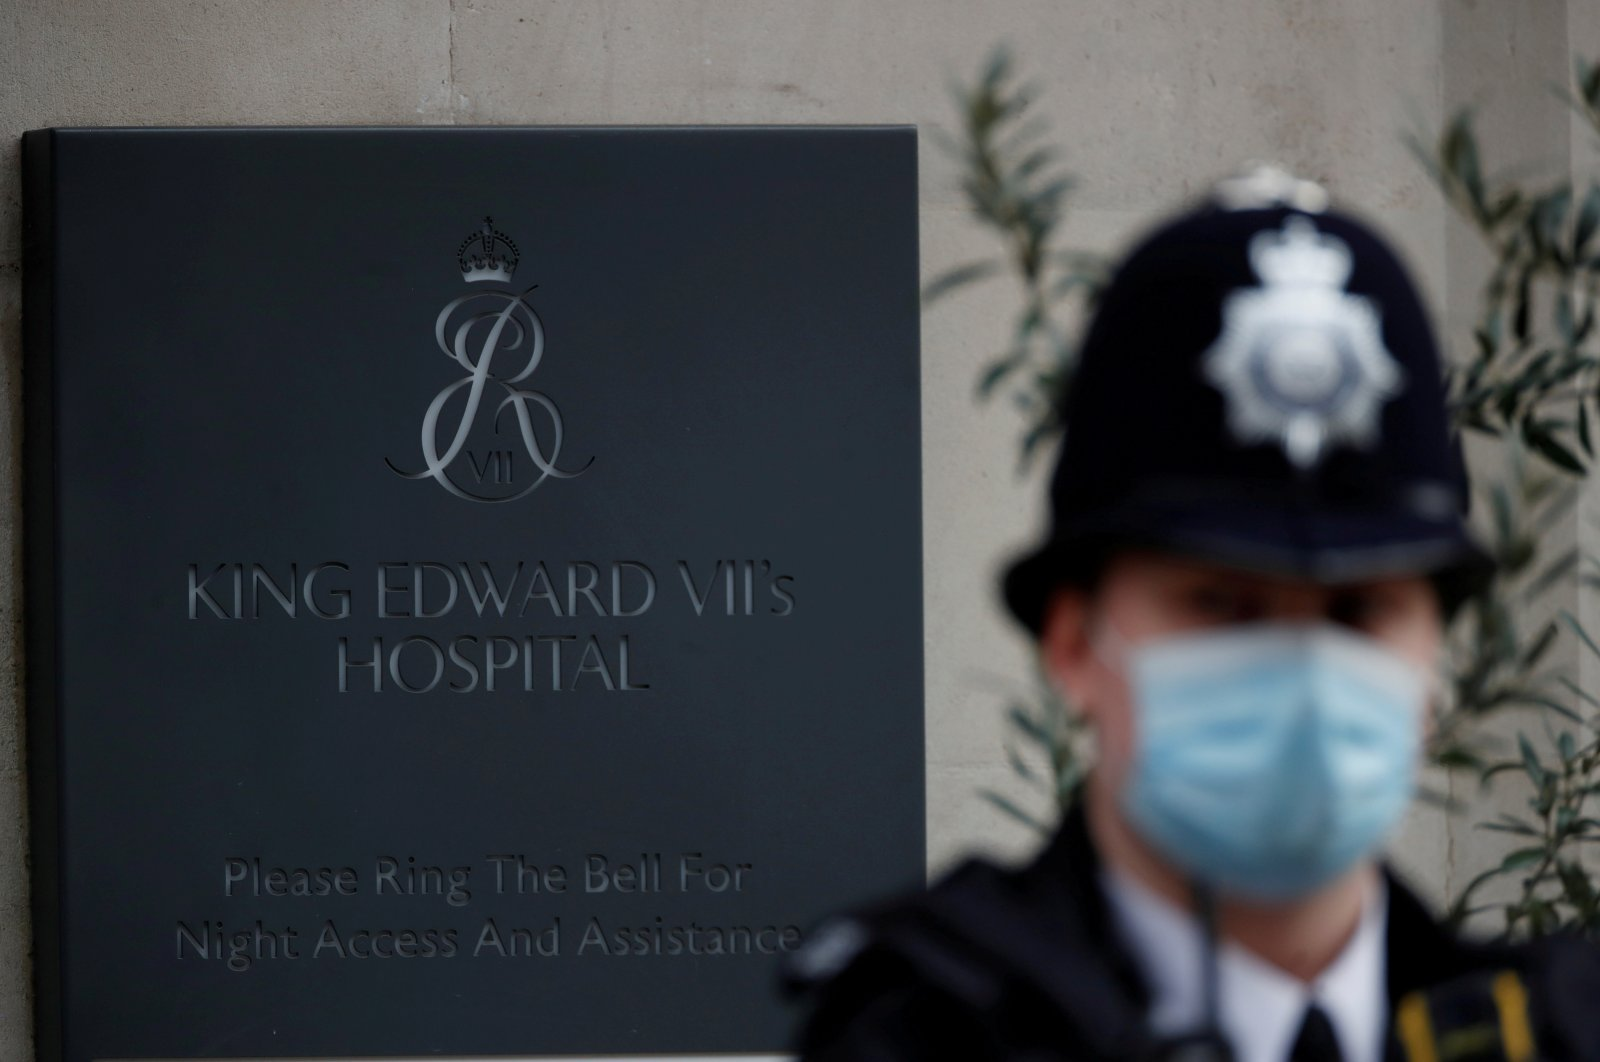 A police officer stands outside King Edward VII's Hospital, where Britain's Prince Philip was admitted, in London, U.K., March 5, 2021. (Reuters Photo)